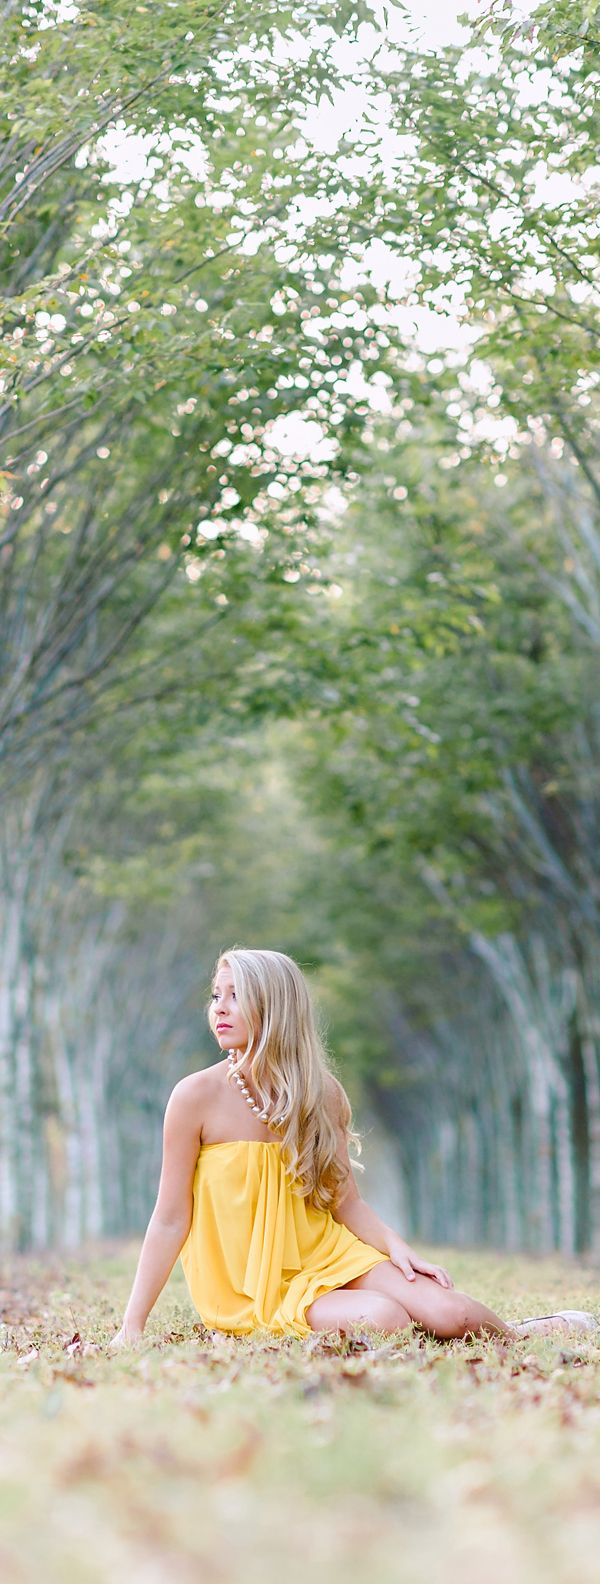 119 best SENIOR PICTURES images on Pinterest | Senior photography ...